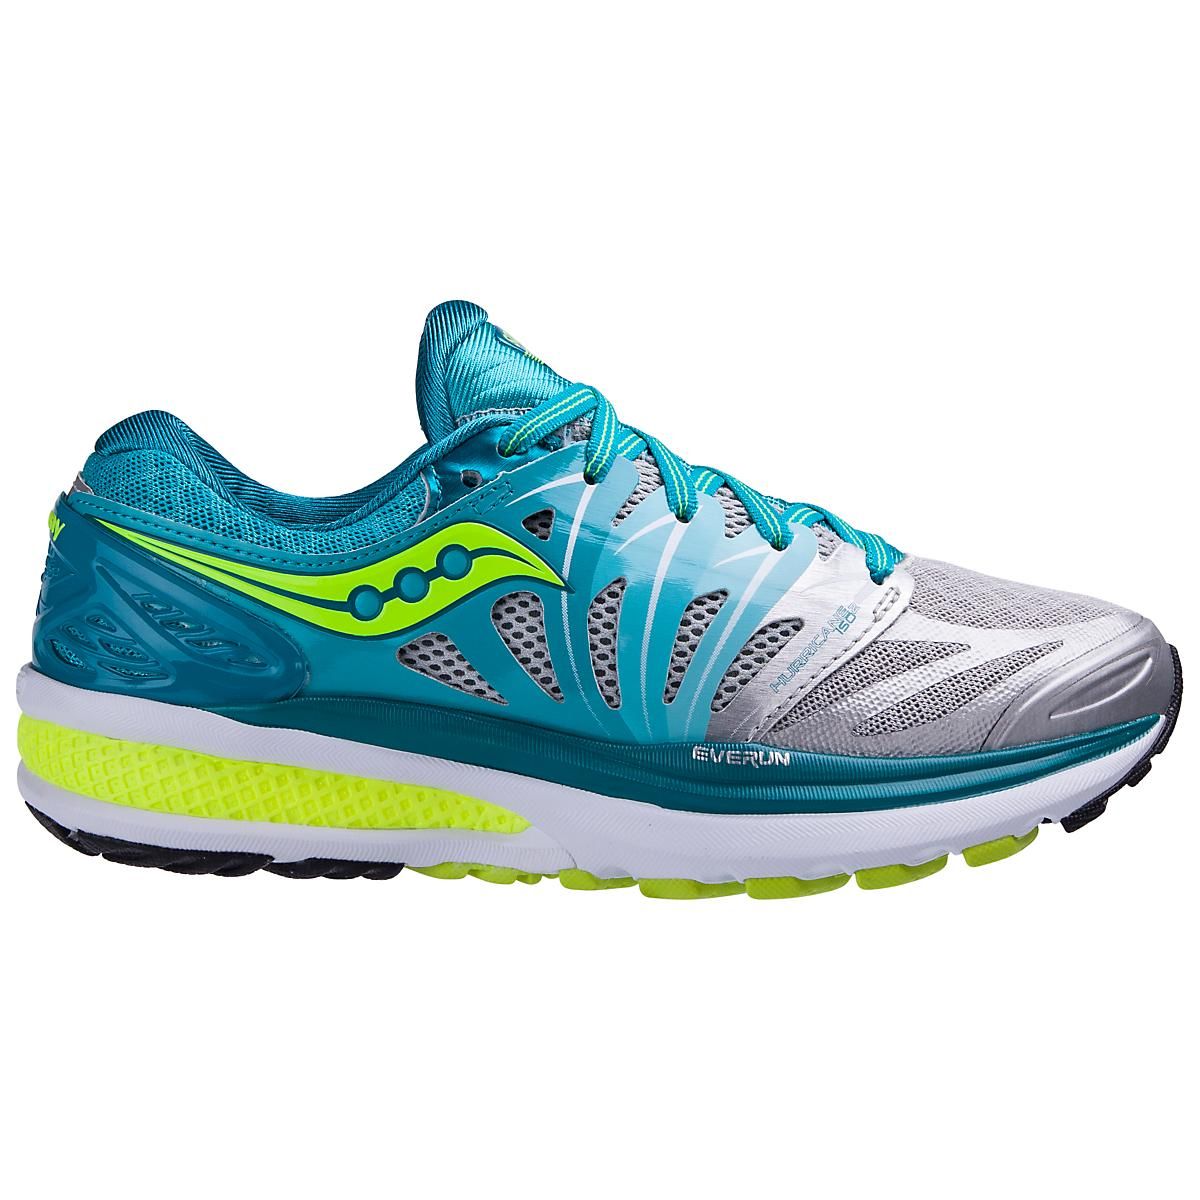 378e5438651c Womens Saucony Hurricane ISO 2 Running Shoe at Road Runner Sports